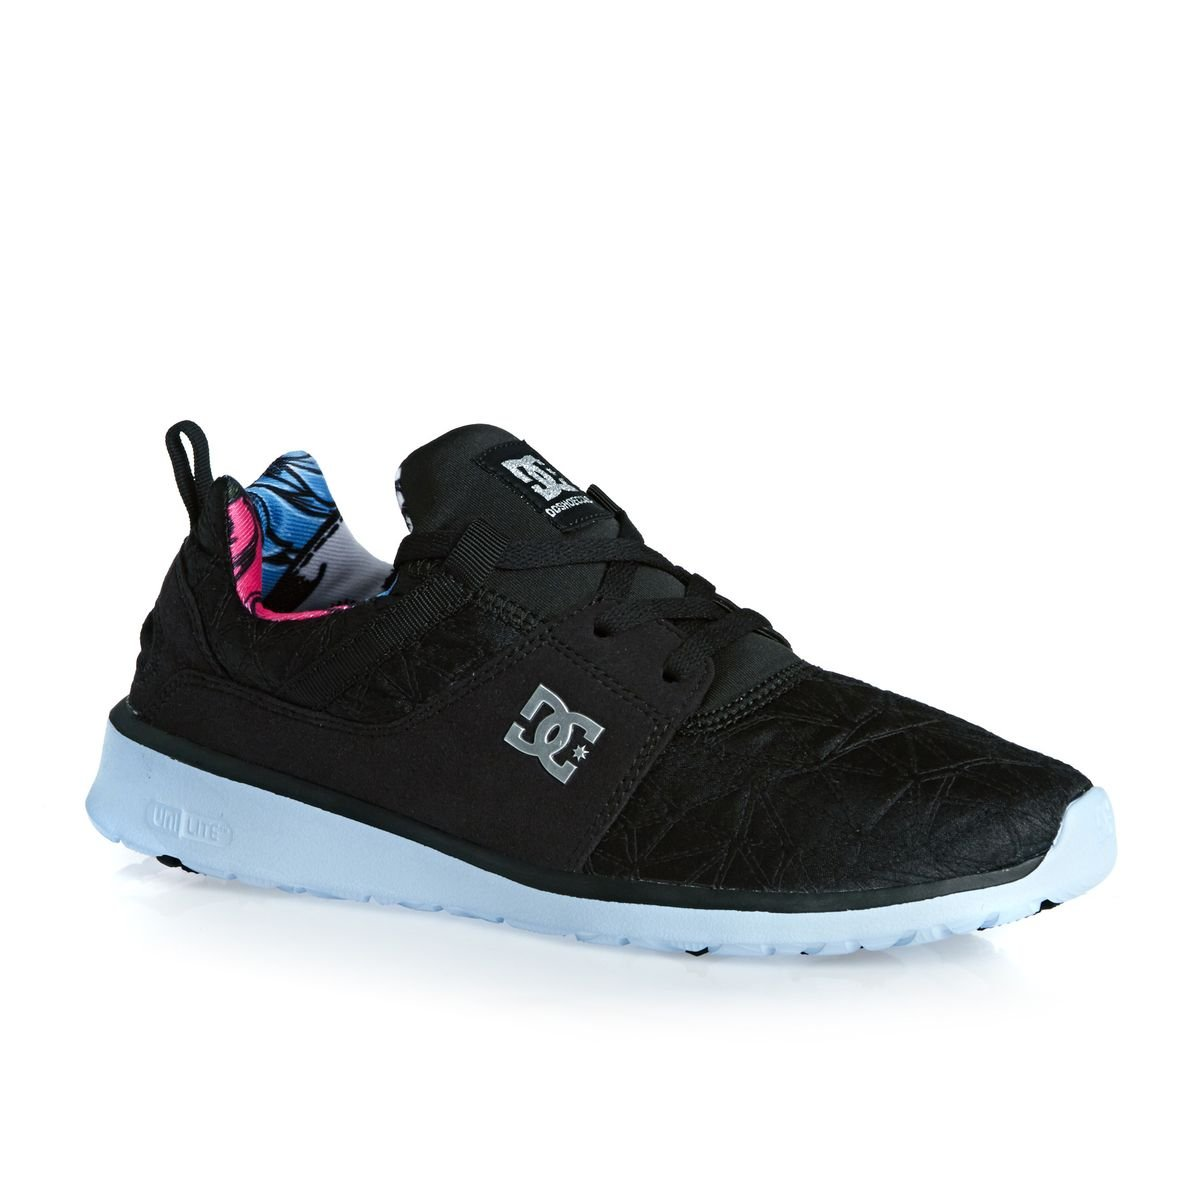 DC Shoes Heathrow X TR - Chaussures Basses Pour Femme ADJS700024